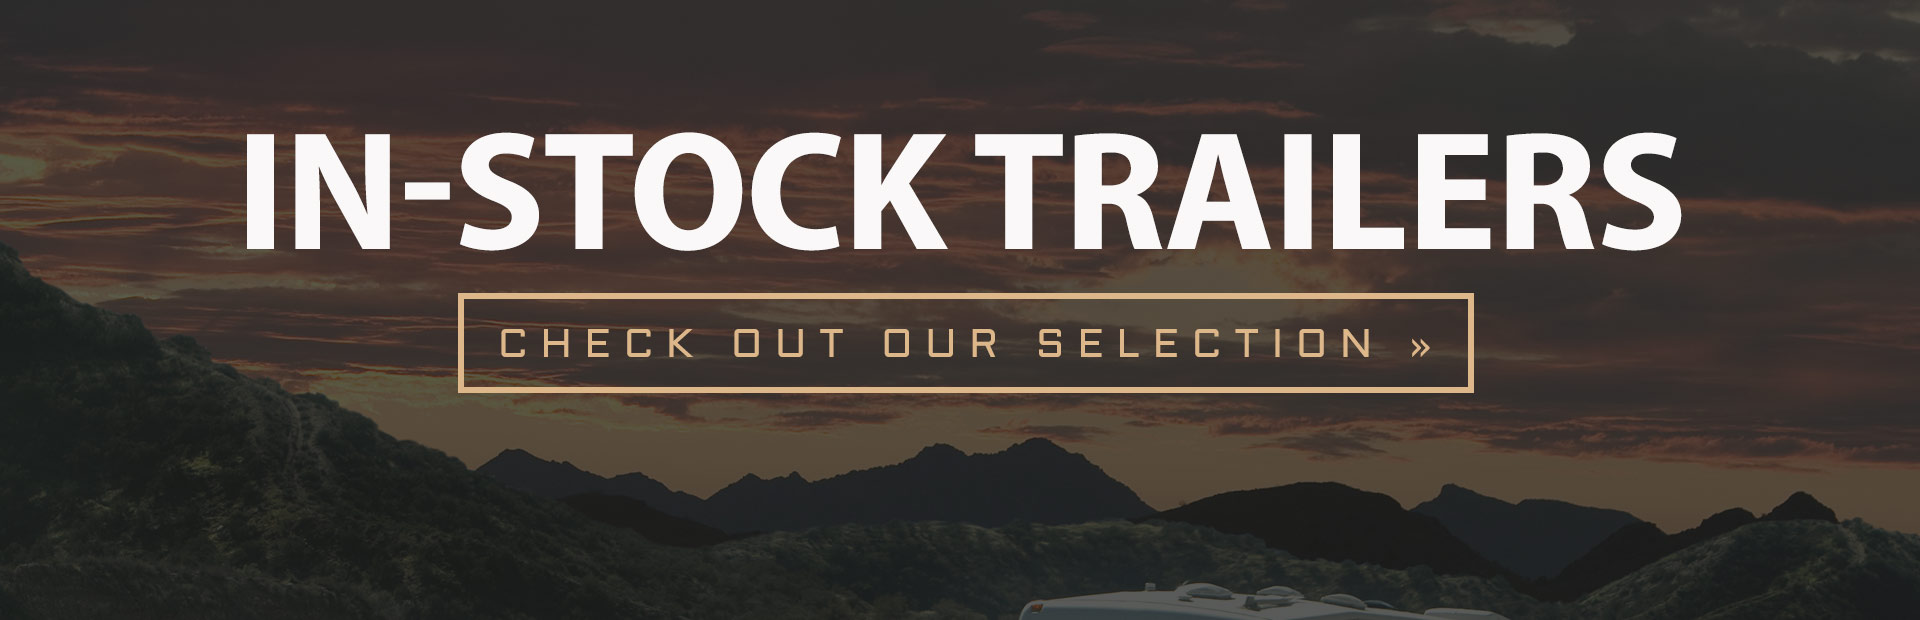 Check out our selection of in-stock trailers!